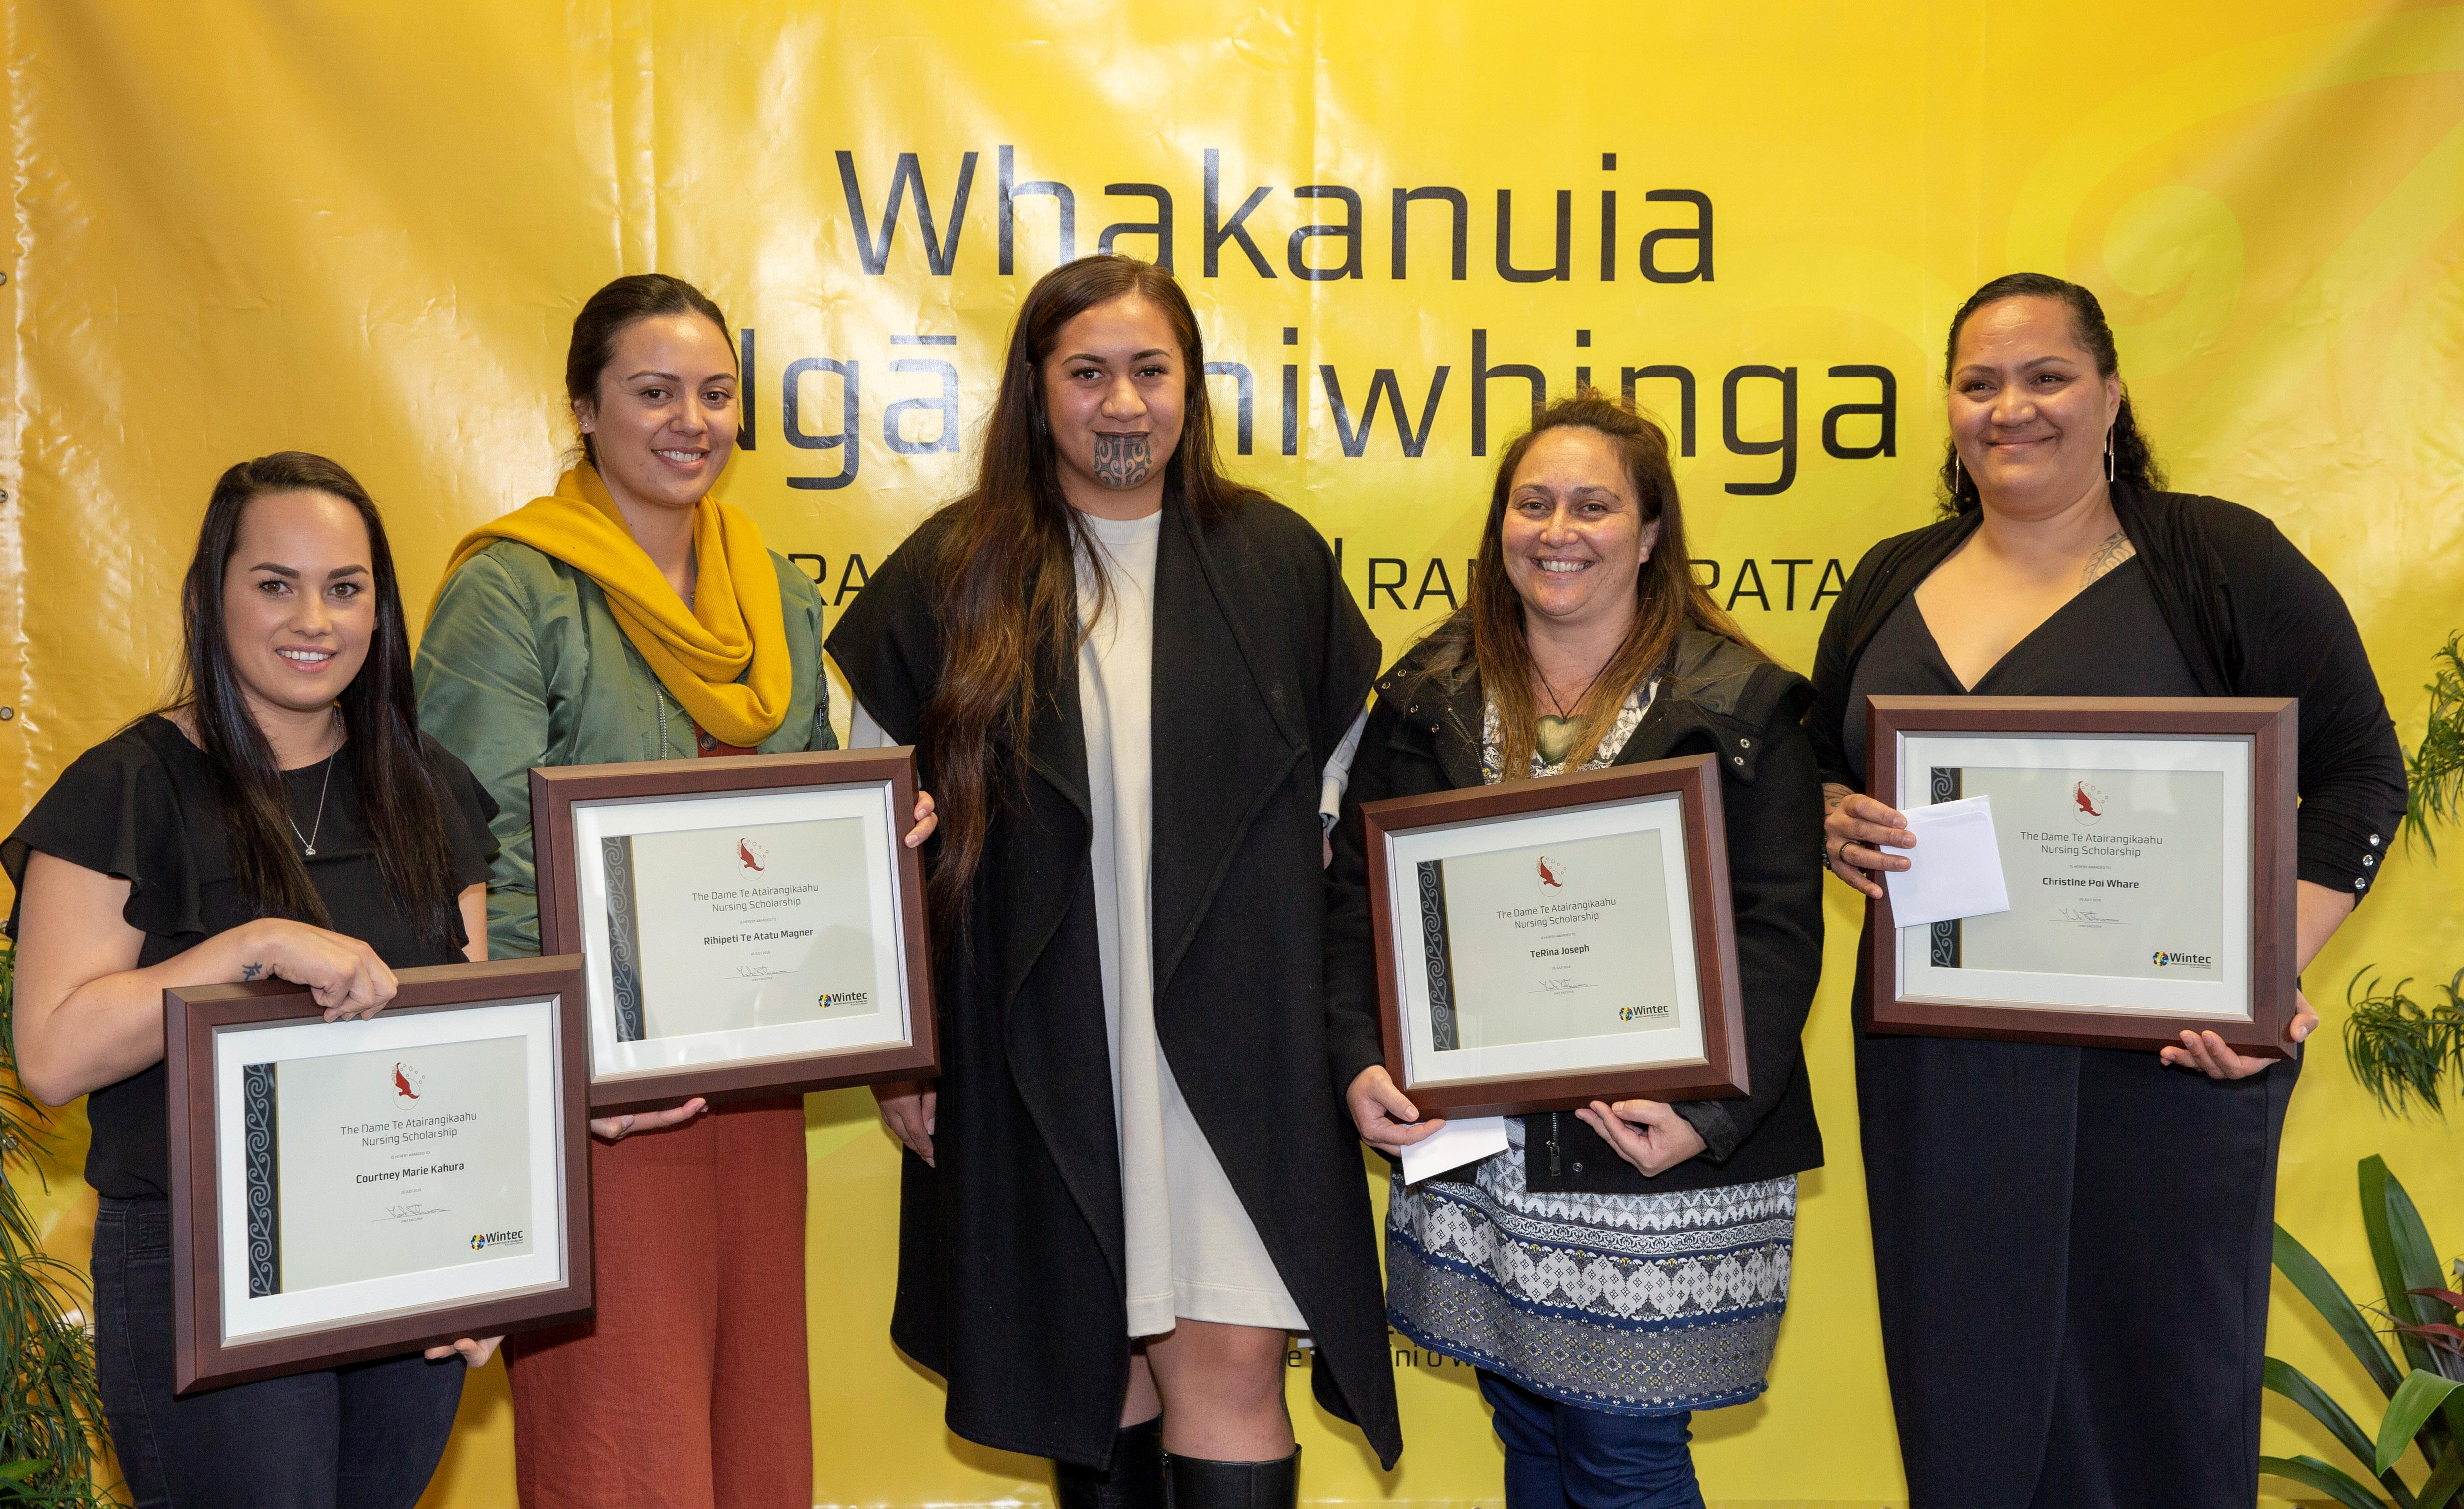 Four Wintec nursing and midwifery students have been awarded Dame Te Ātairangikaahu Nursing Scholarships